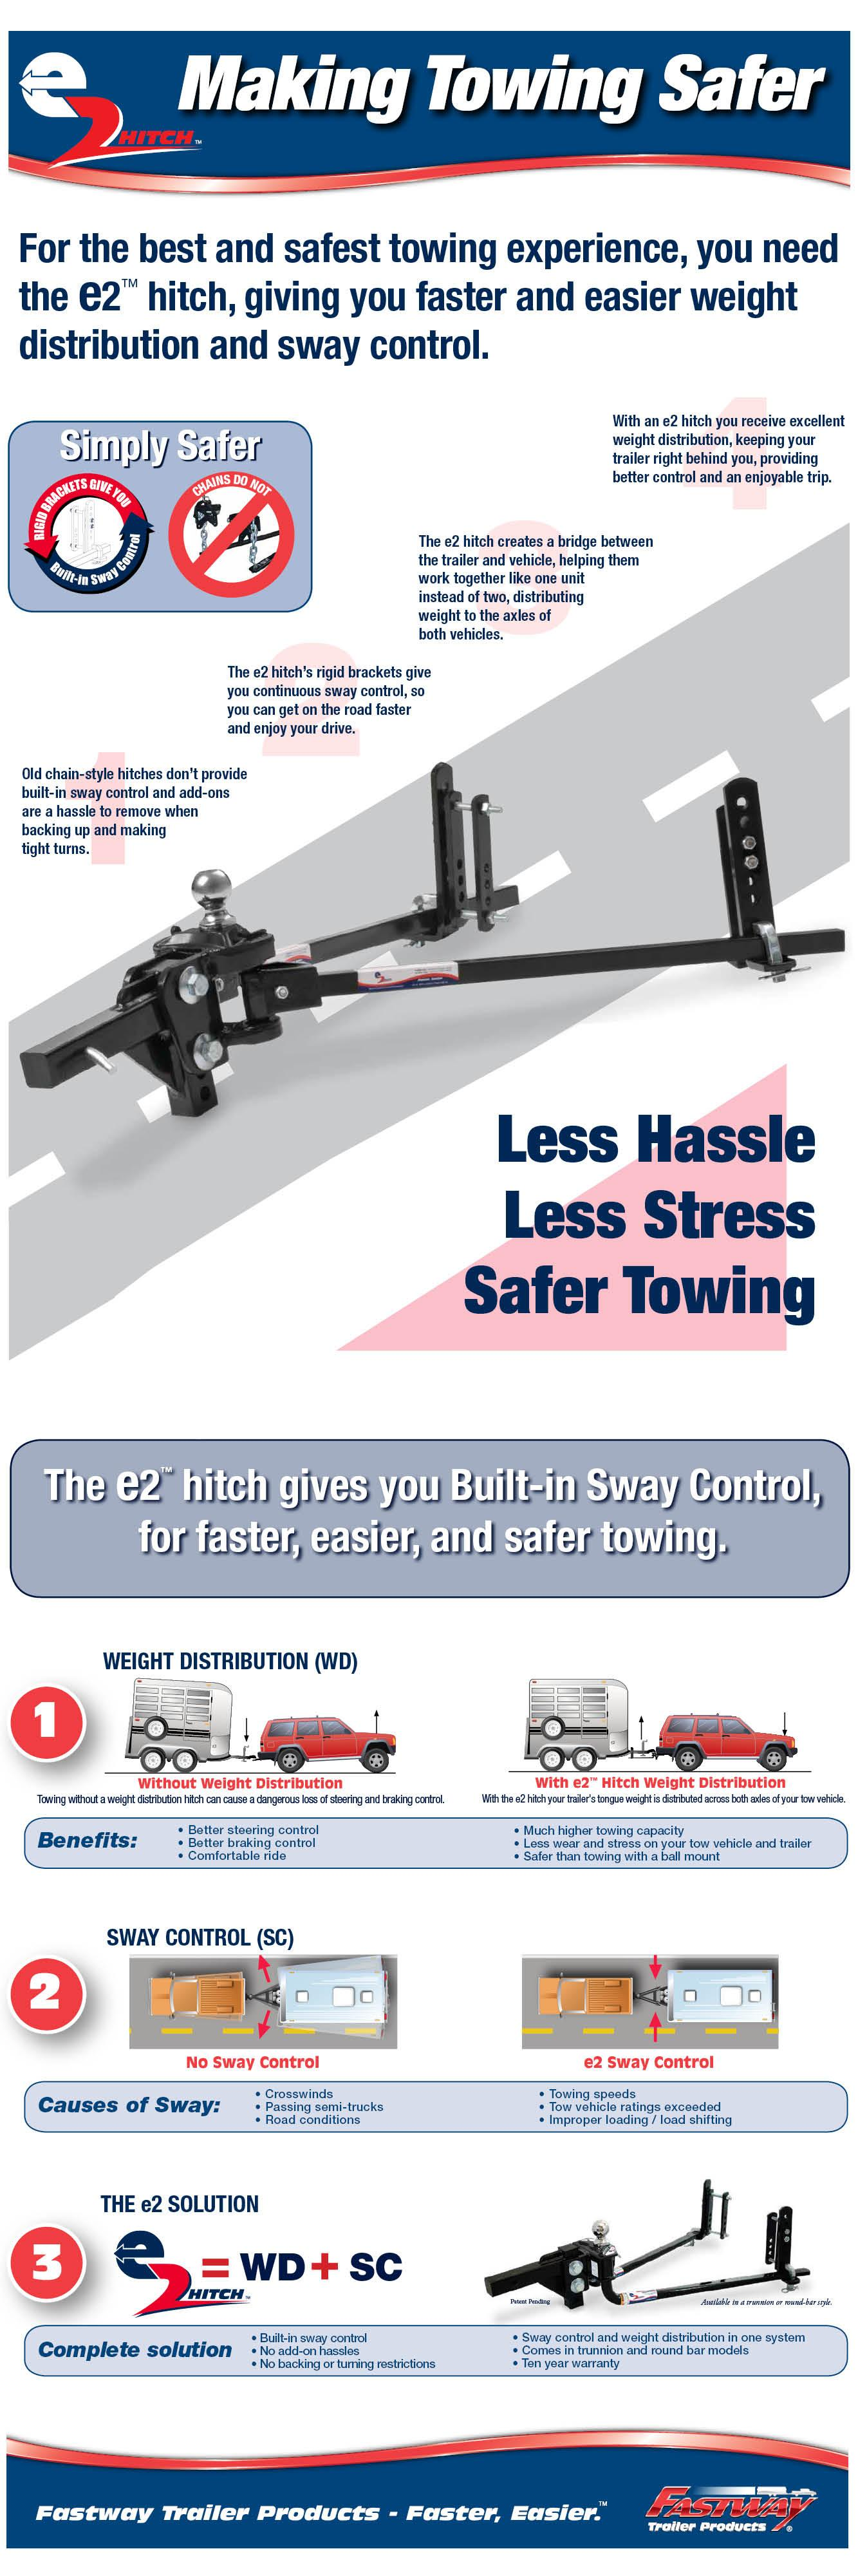 FW_MakingTowingSafer_Infog_June2017.jpg#asset:286